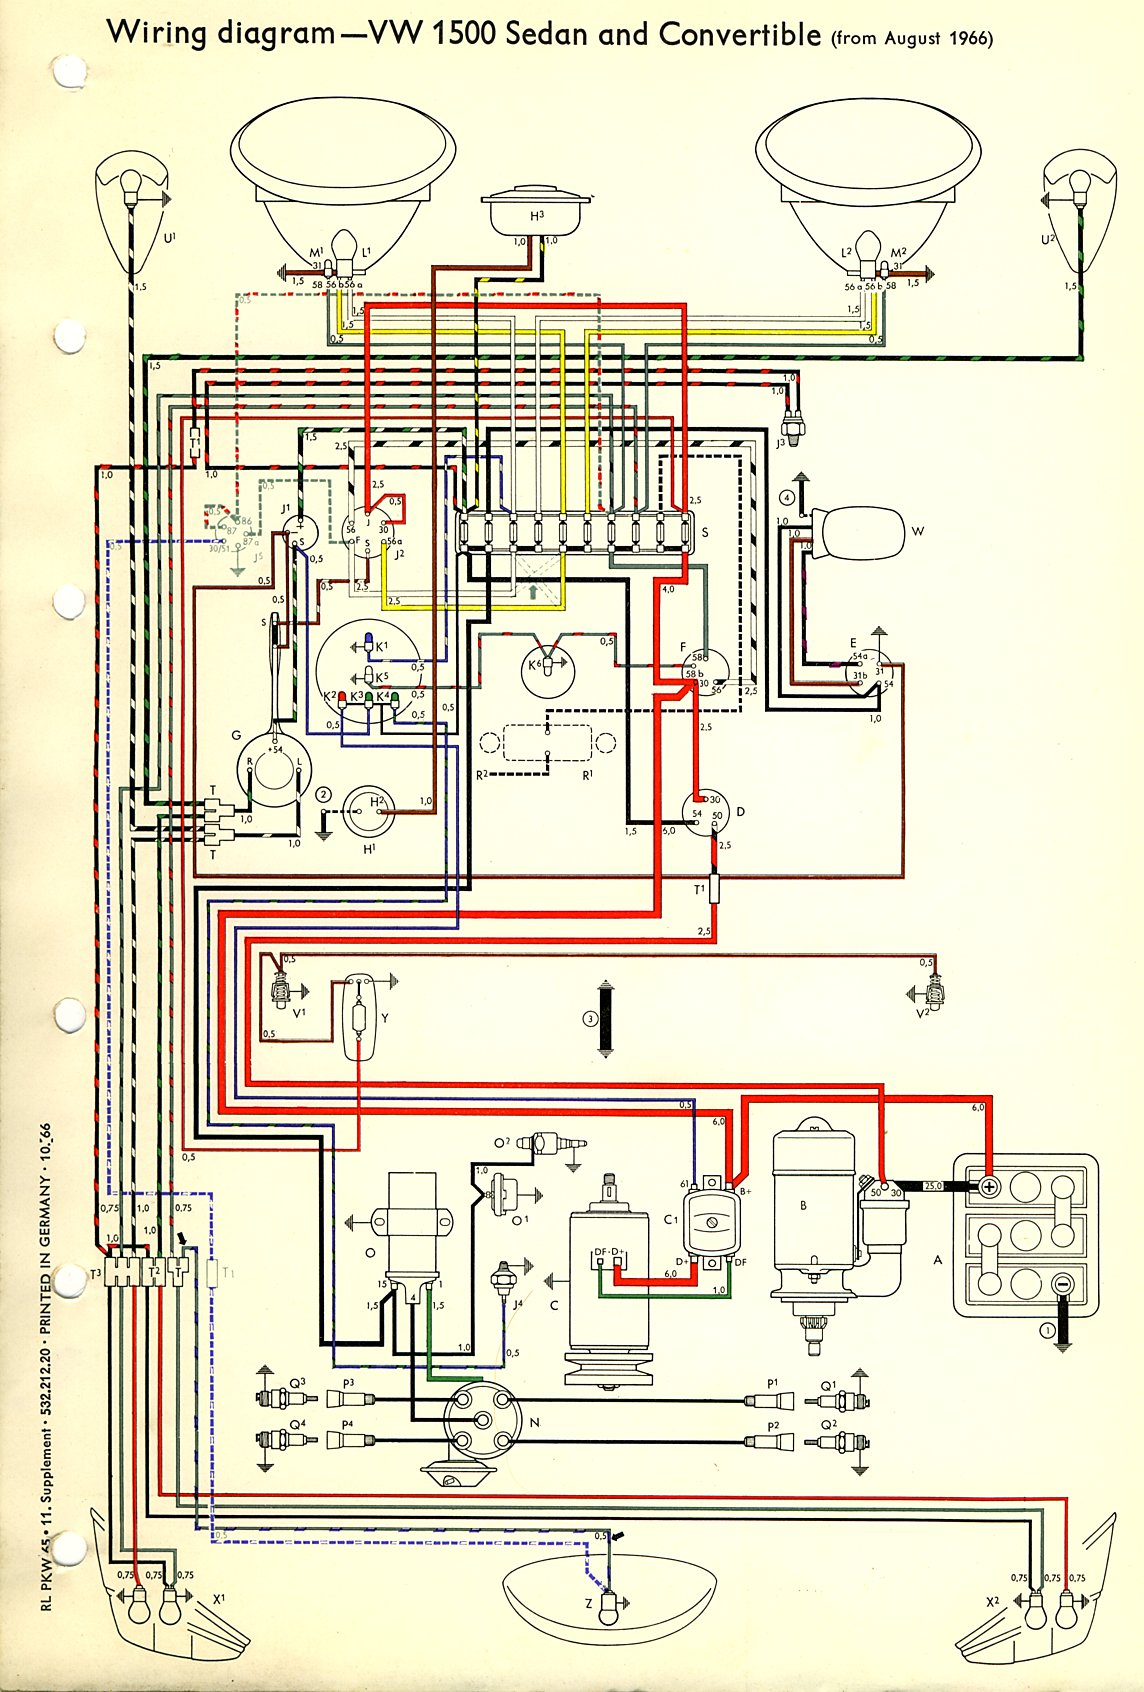 TheSamba.com :: Type 1 Wiring Diagrams on